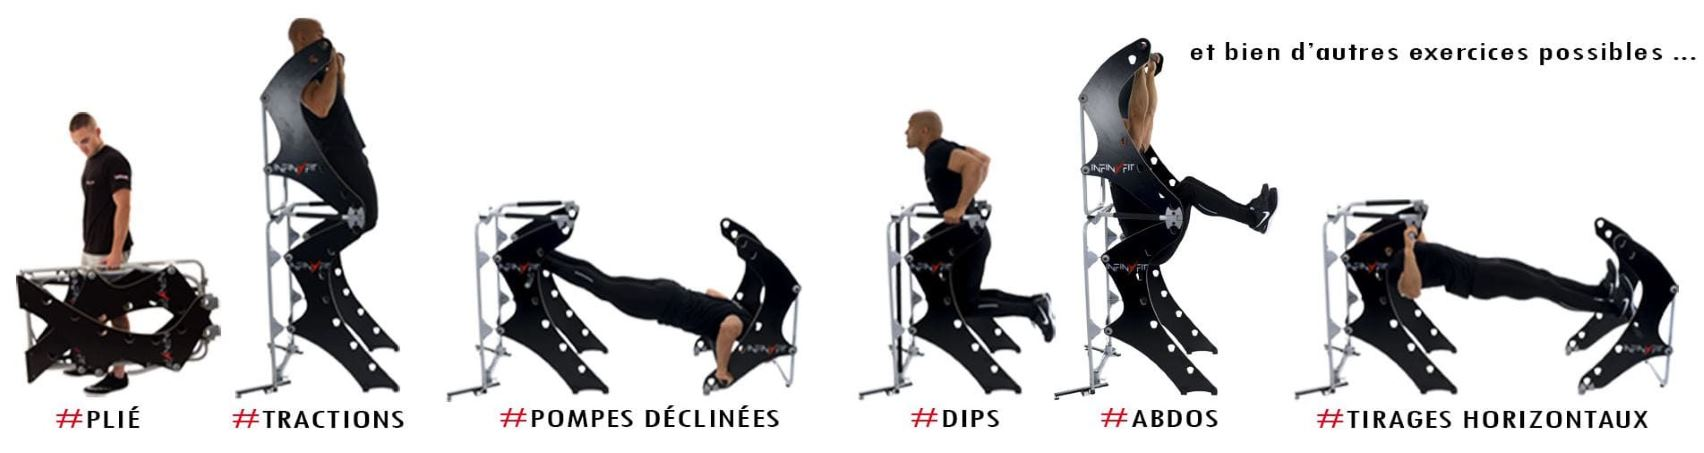 chaise romaine dips pompes tractions